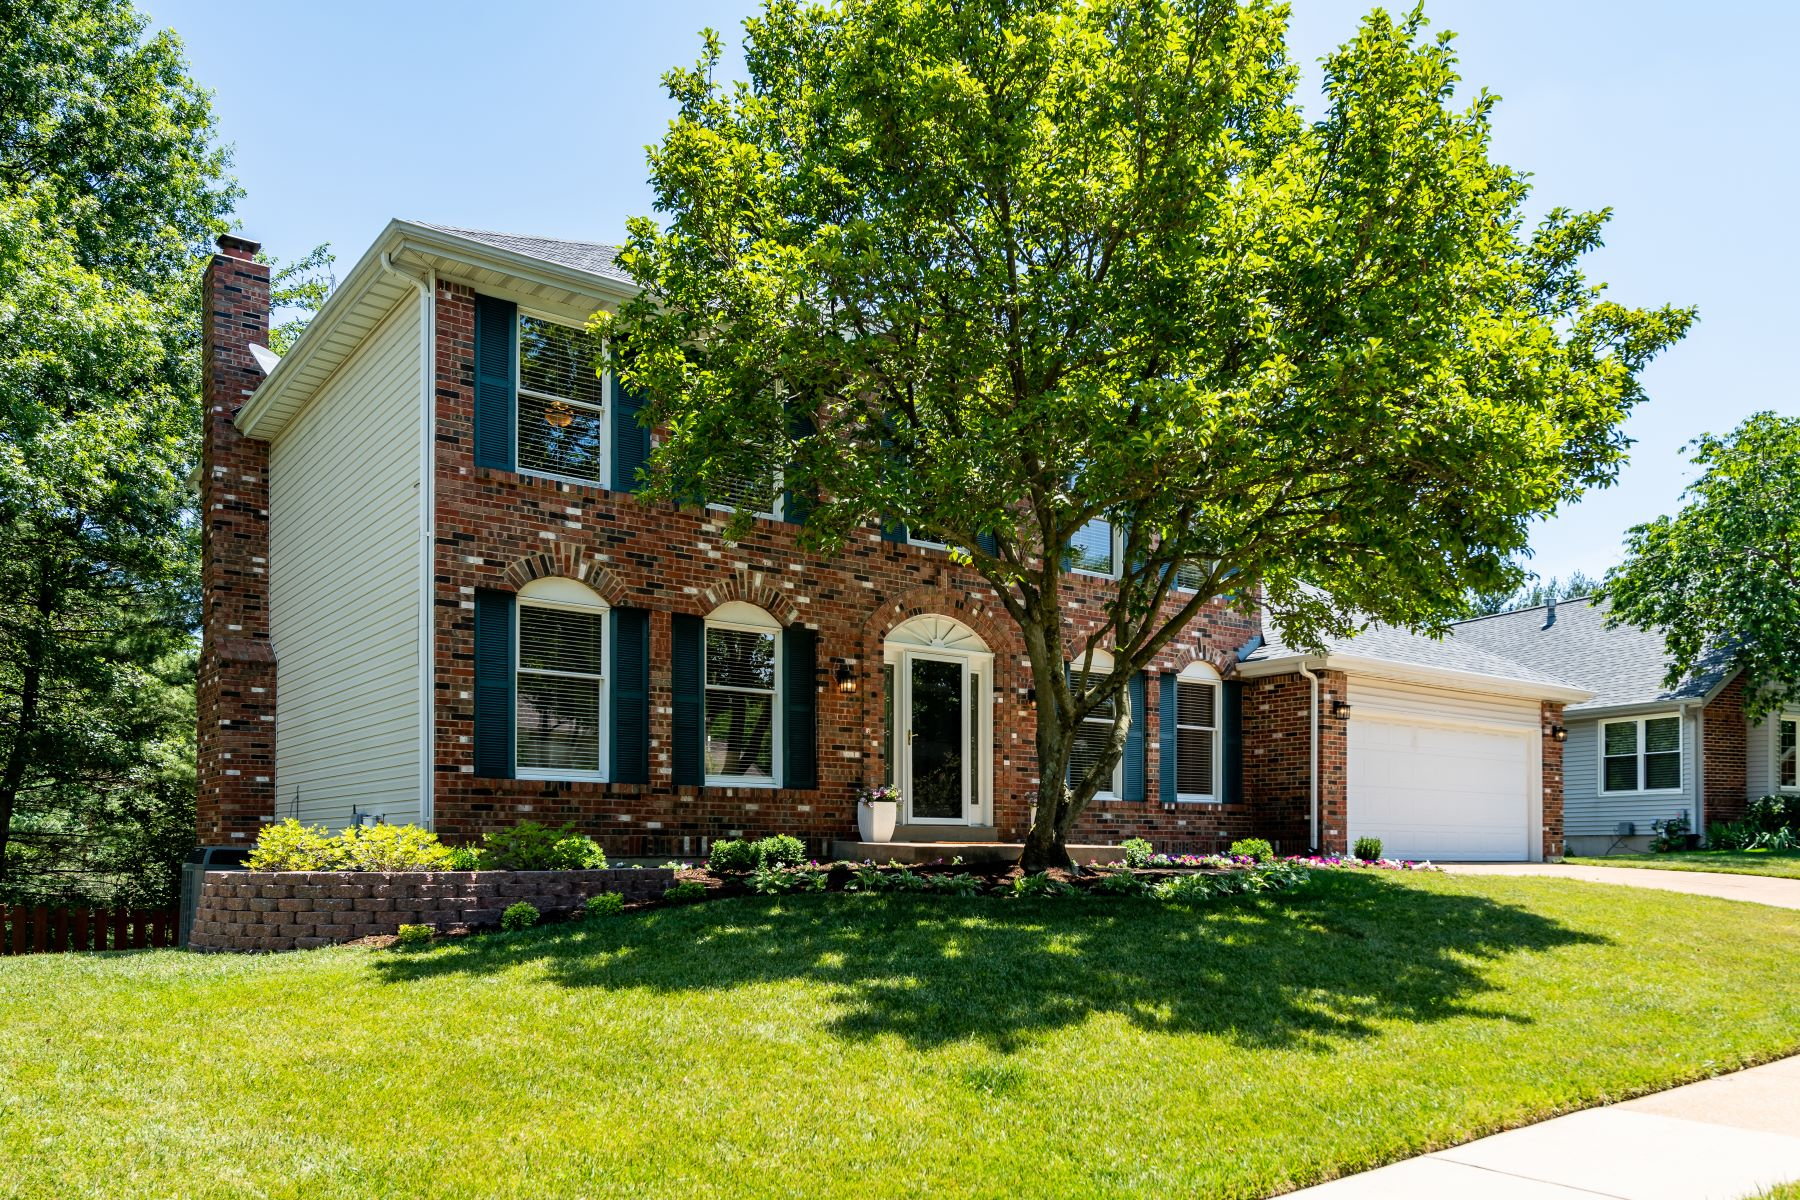 Single Family Homes for Sale at Great Chesterfield Two Story 1809 York Ridge Court Chesterfield, Missouri 63017 United States